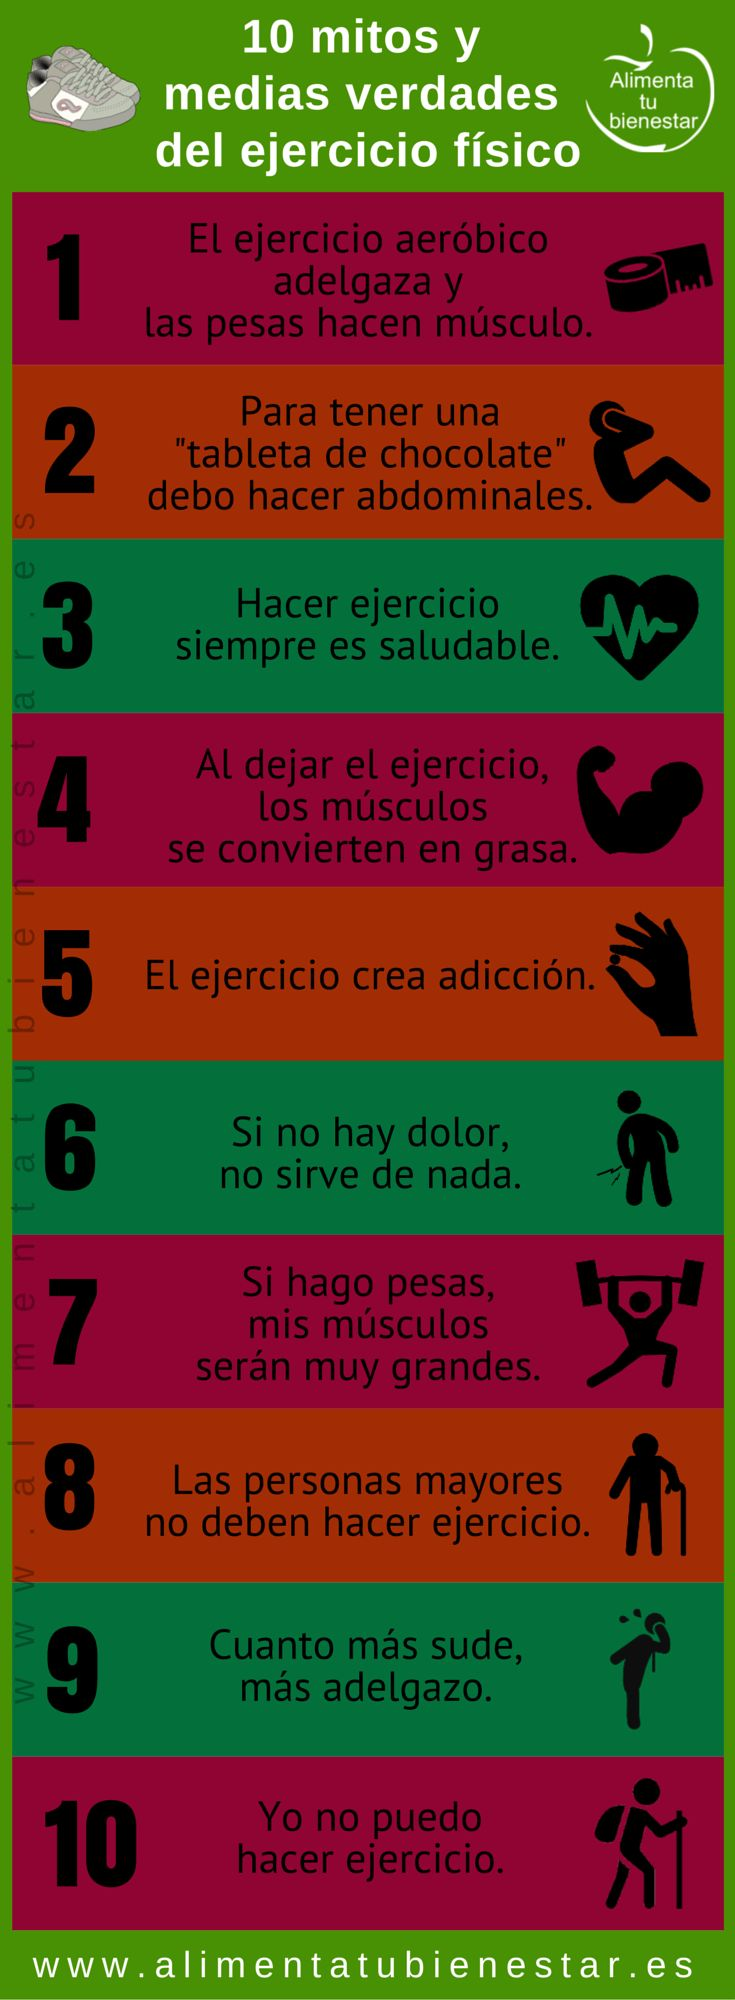 146 best images about camina haz ejercicio on pinterest for Ejercicio fisico